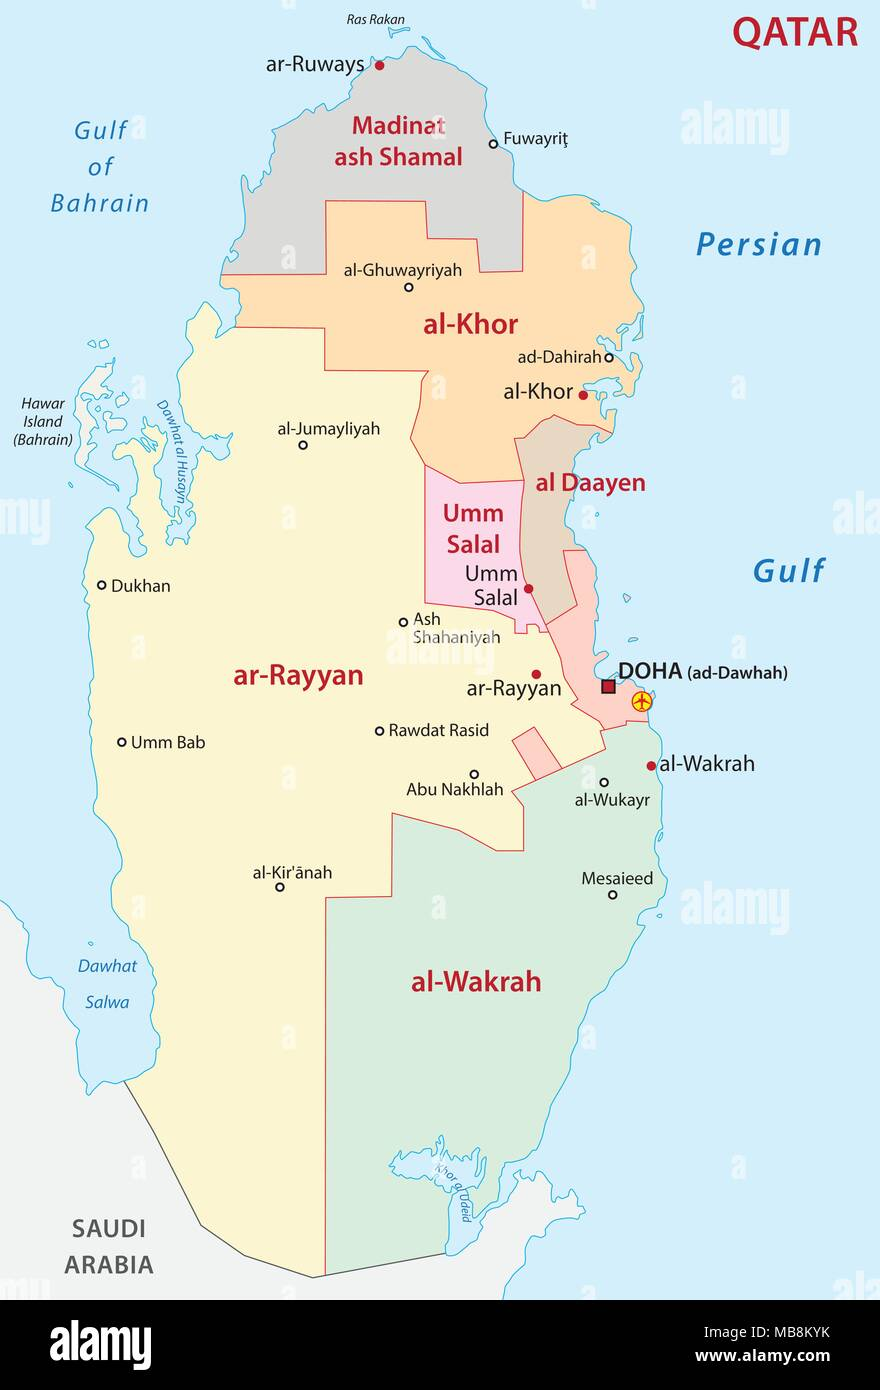 qatar administrative and political vector map Stock Vector Art